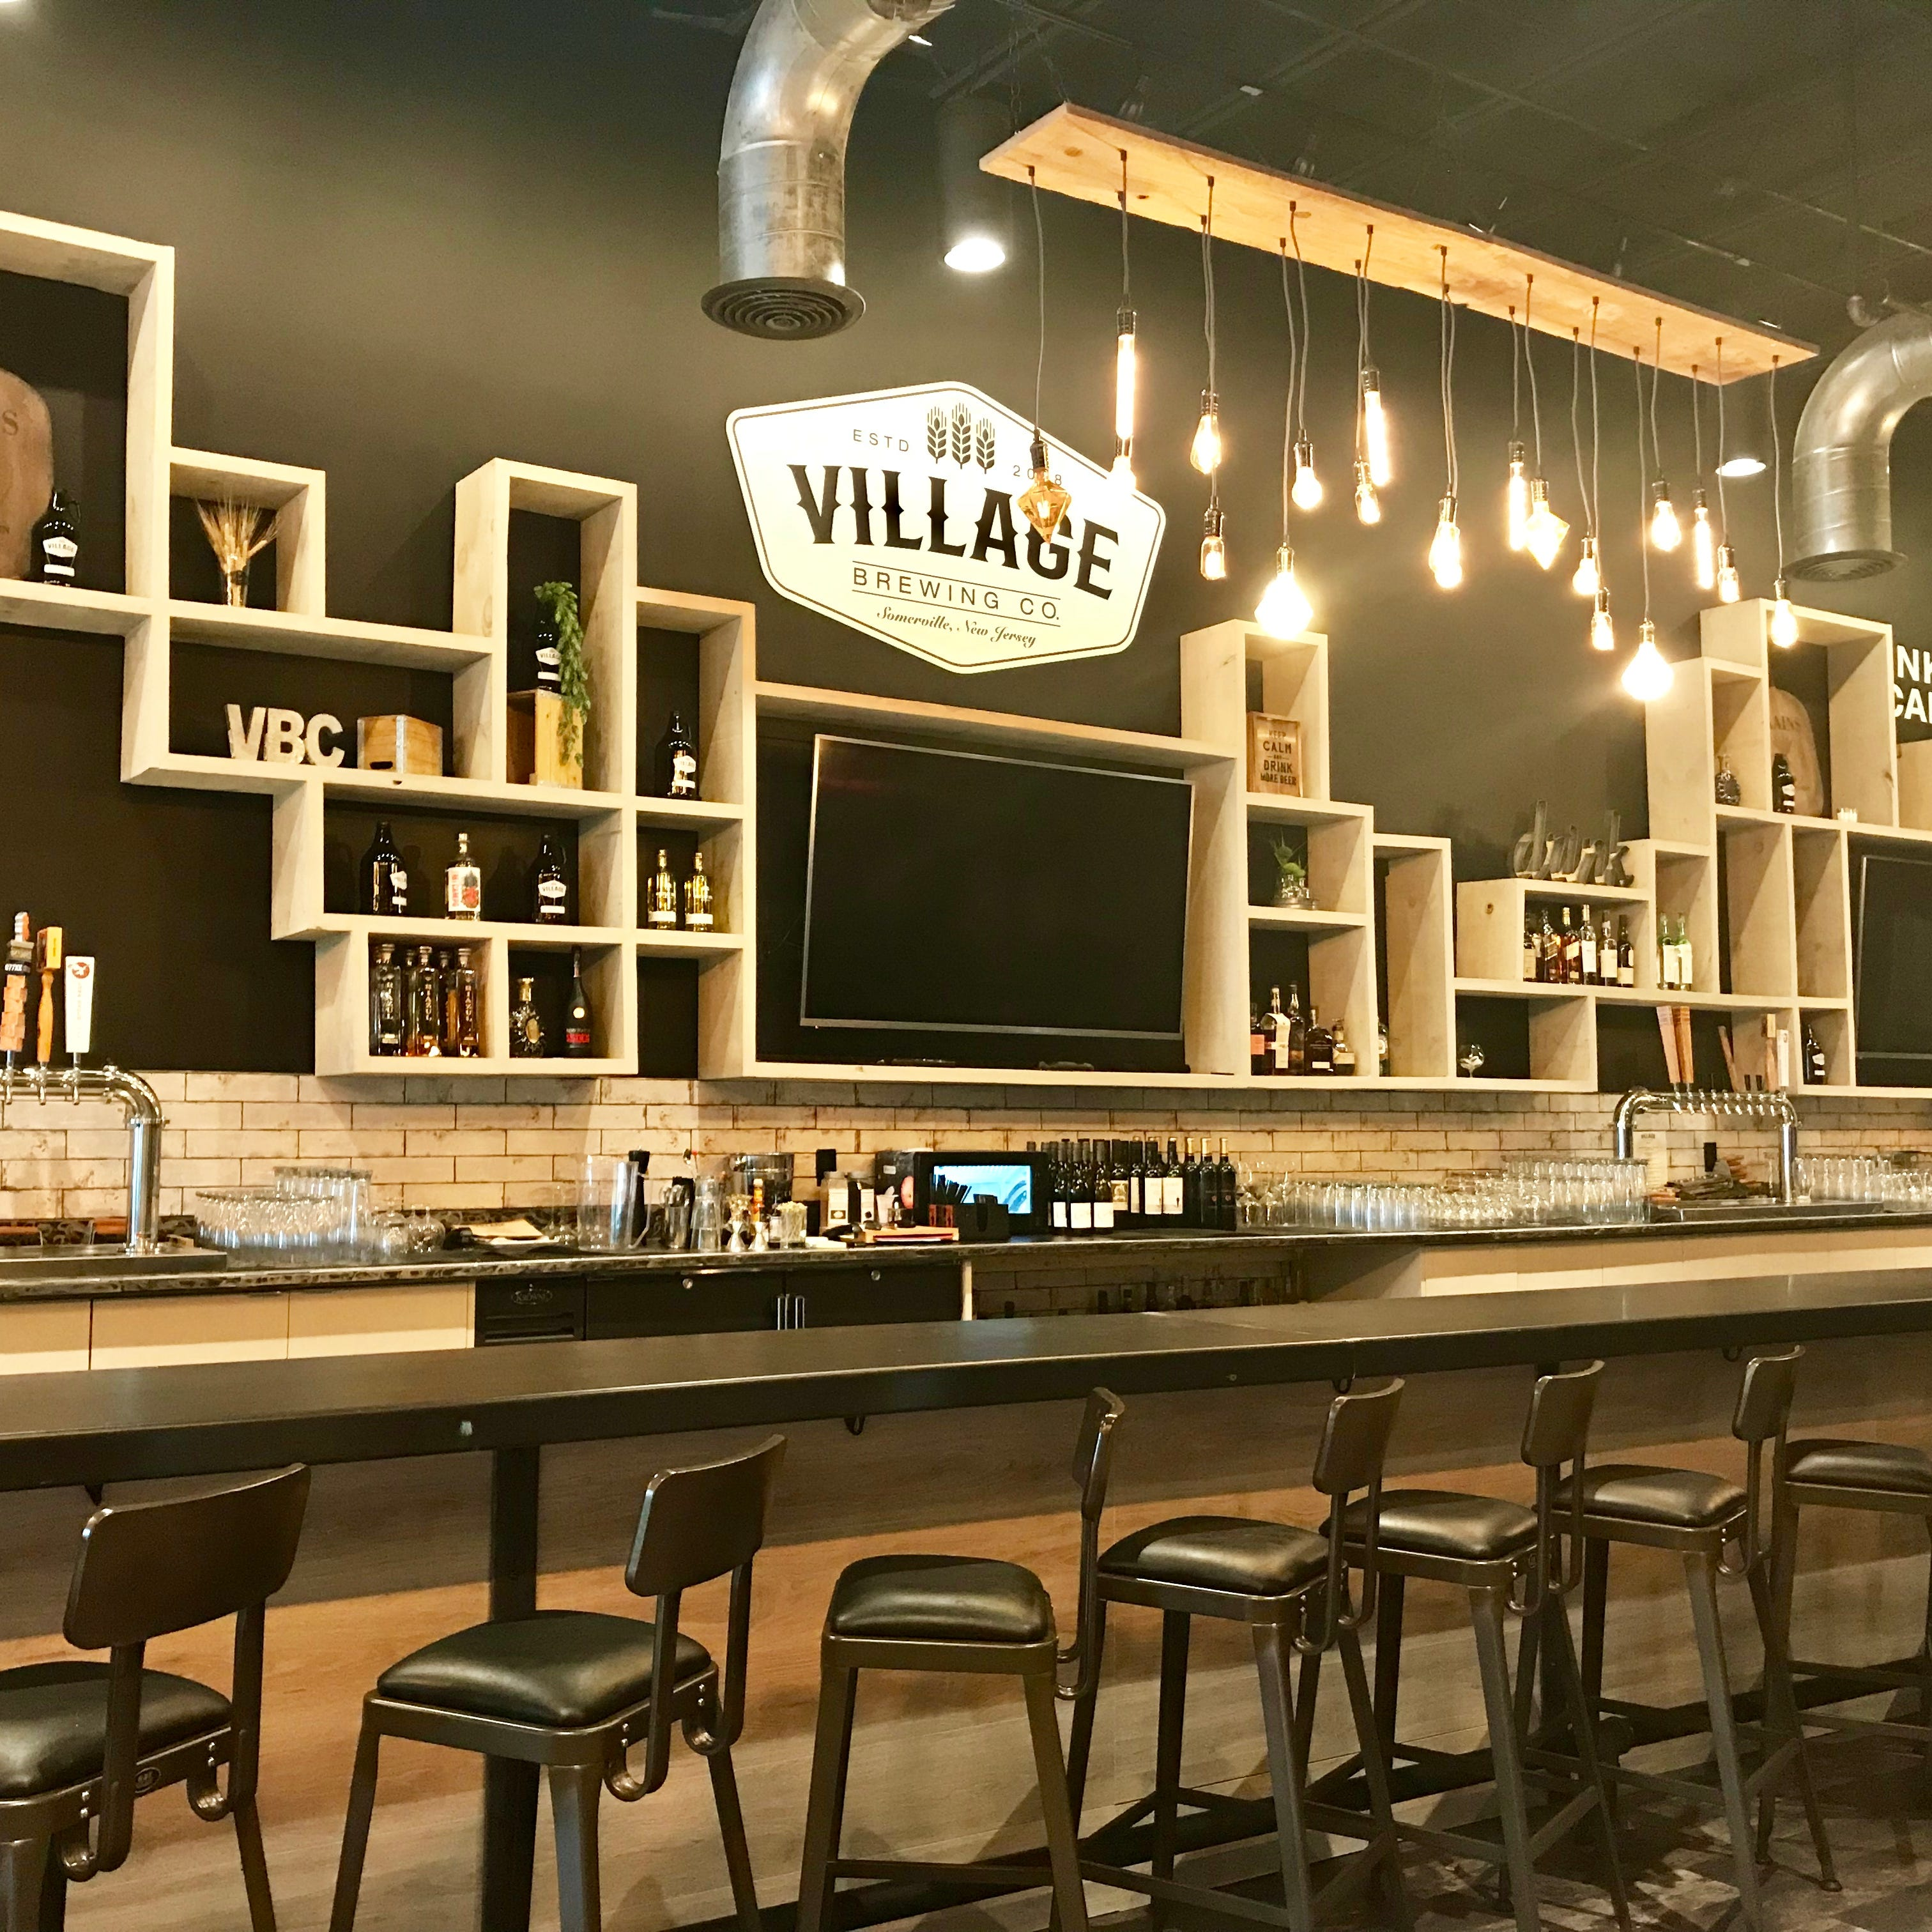 Village Brewing, Somerville's first brewery, is open